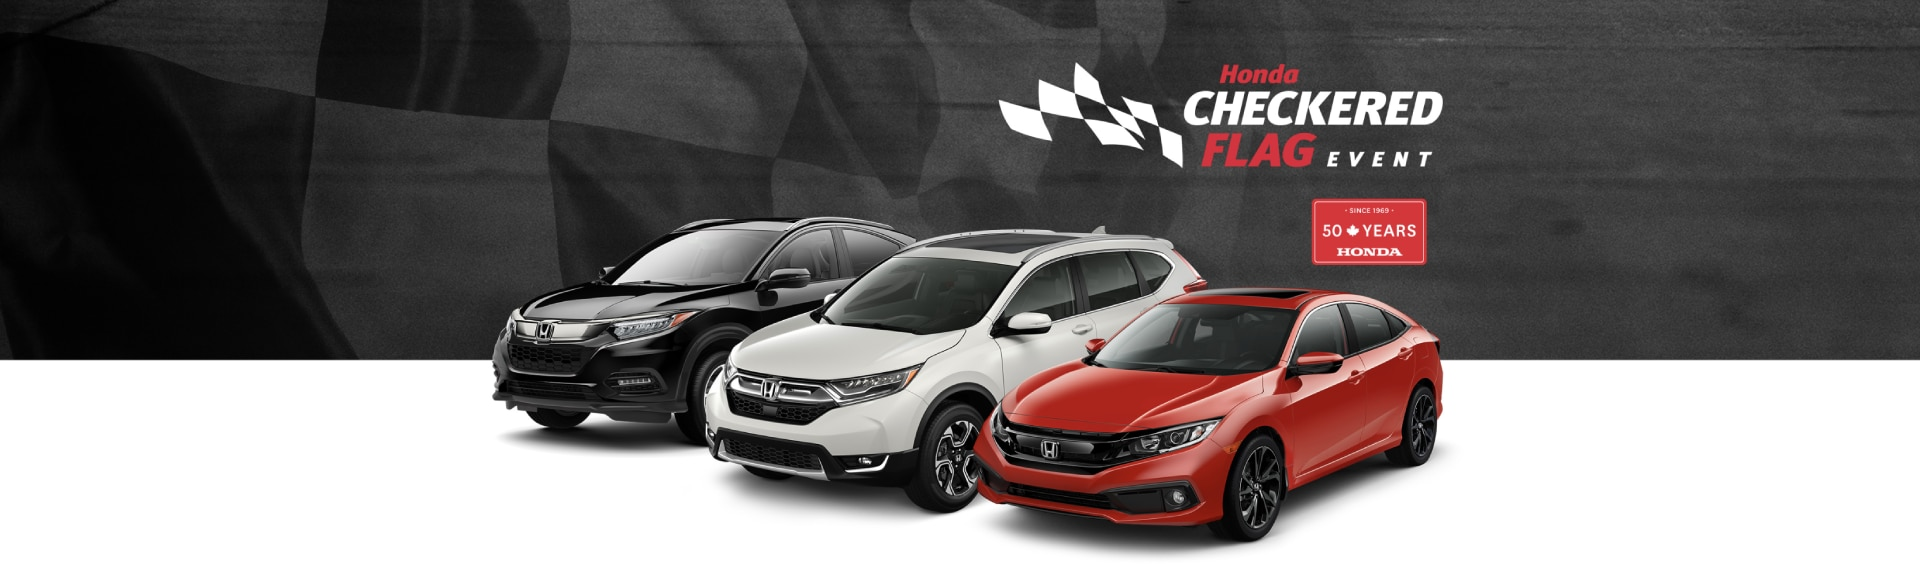 Kawartha Lakes Honda >> Kawartha Lakes Honda New Honda Dealership In Lindsay On